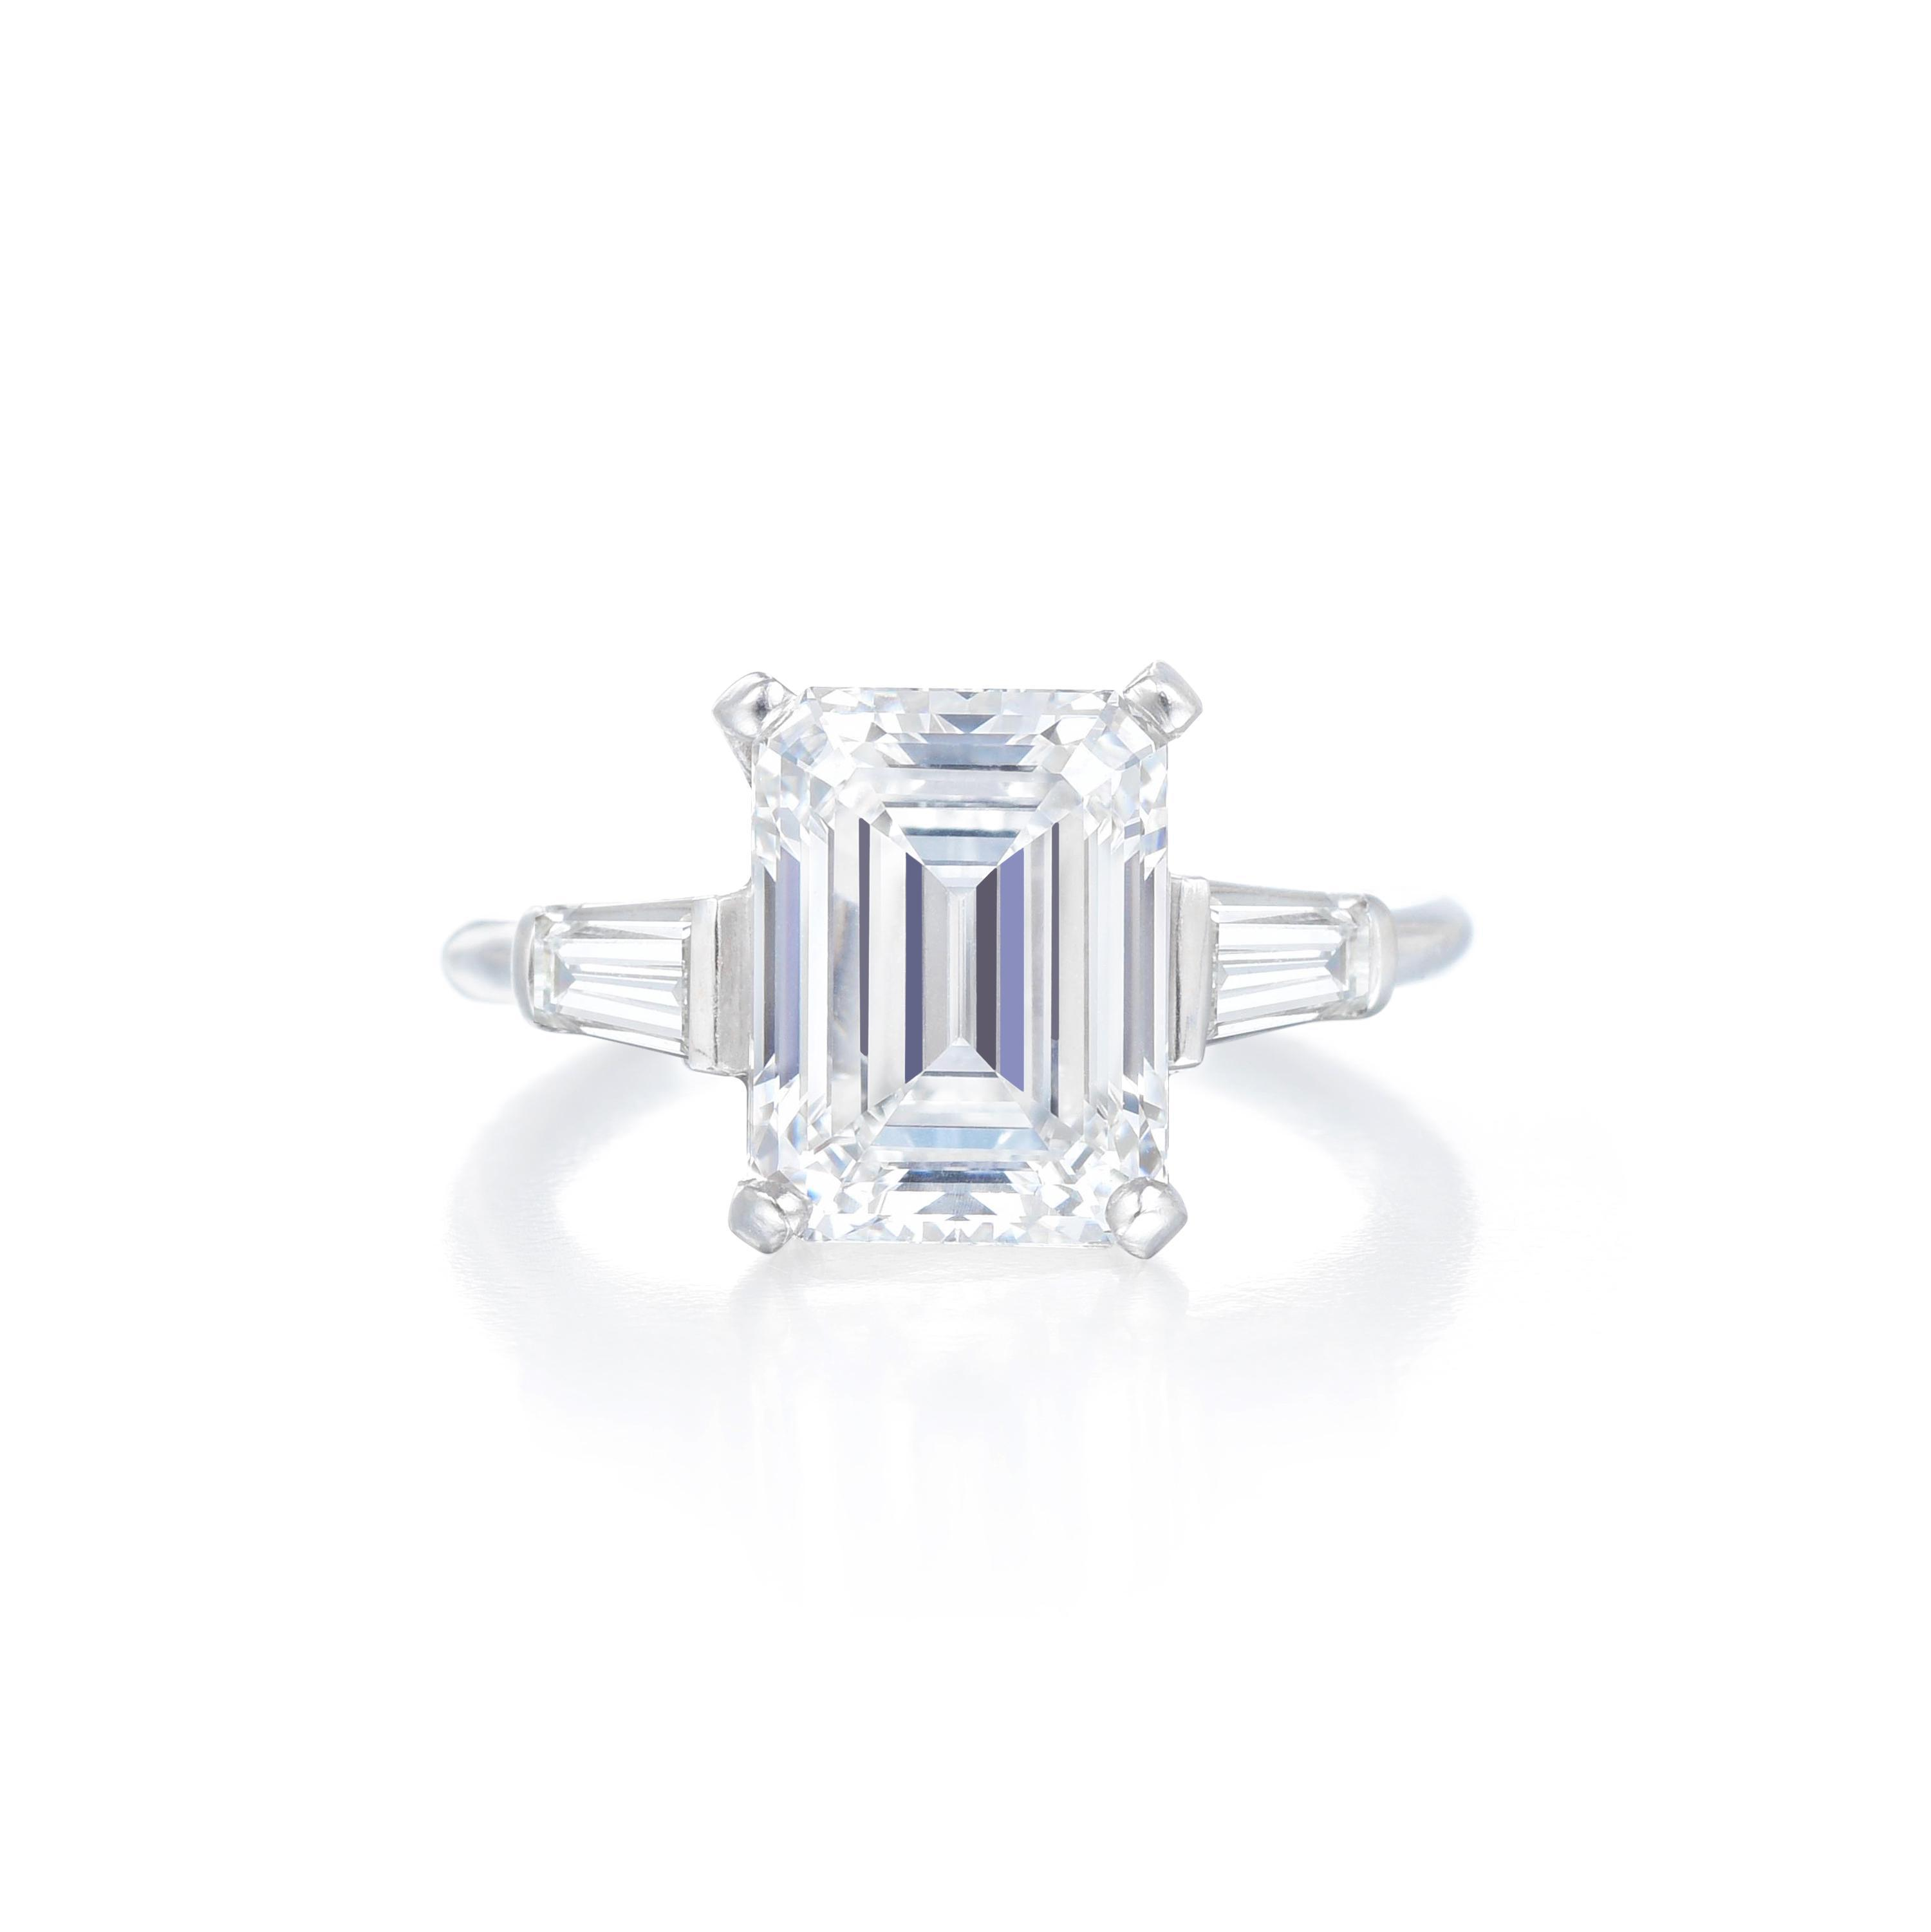 VC&A 3.33ct Diamond Ring